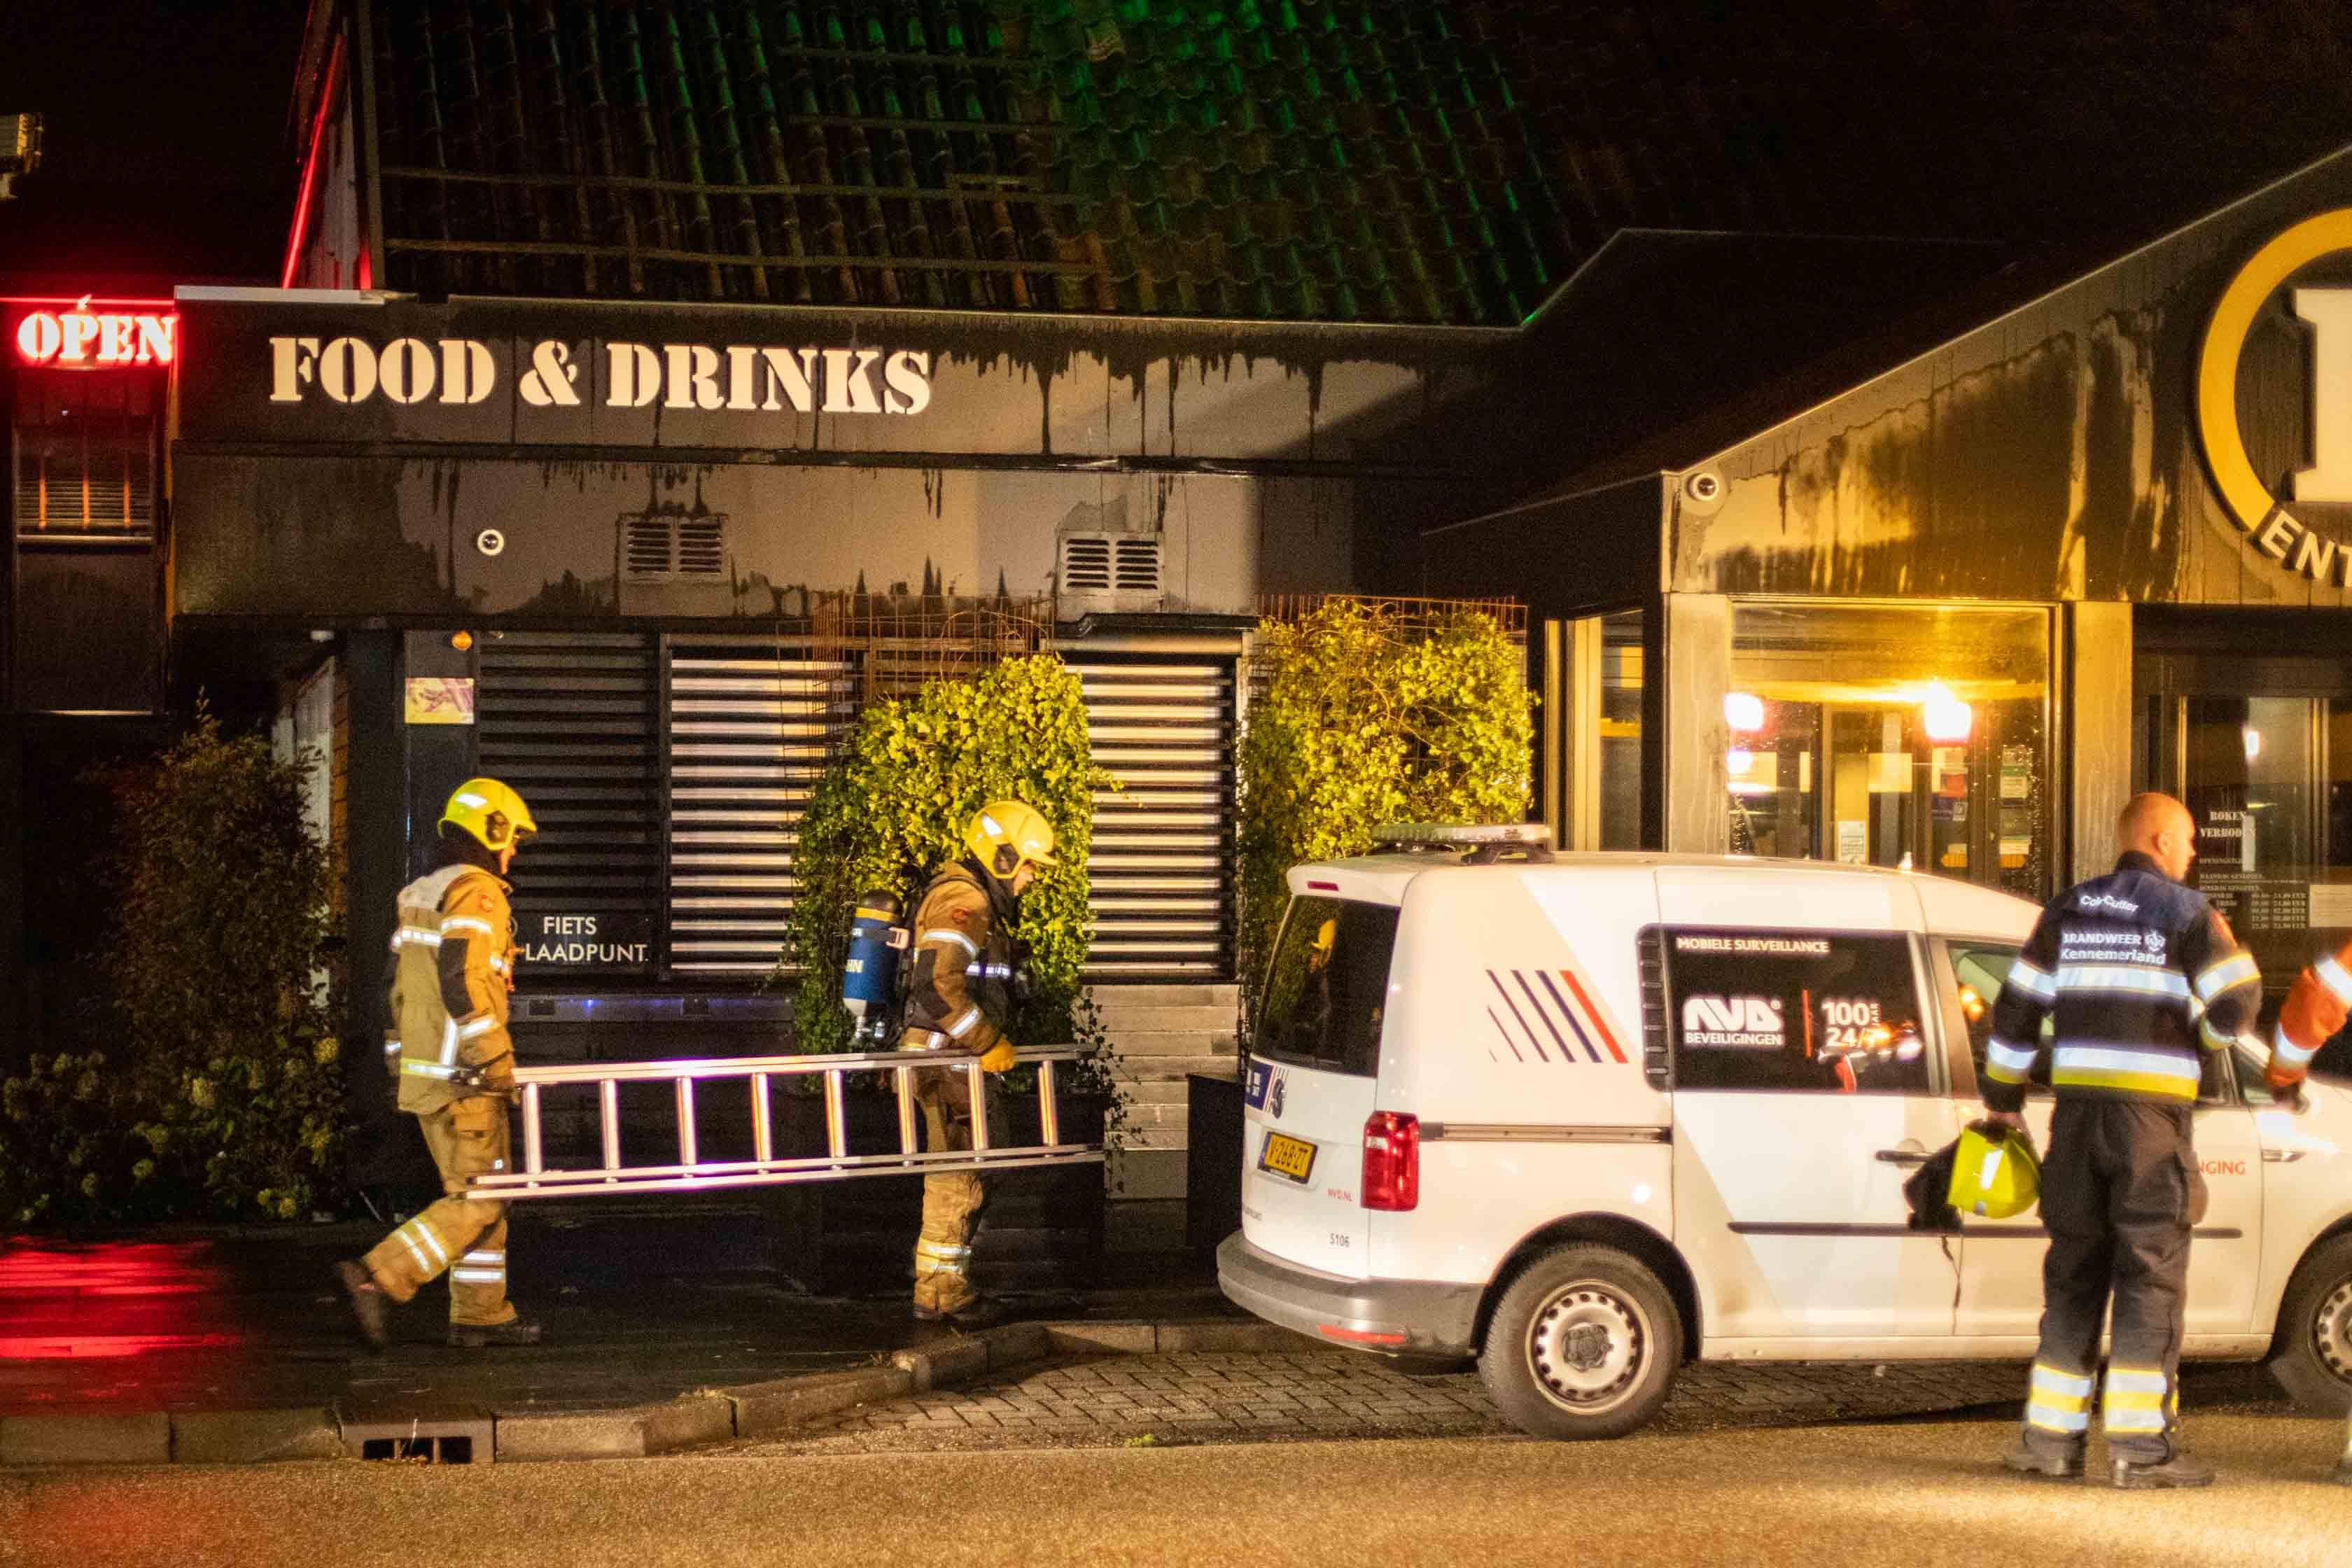 Brand bij Bobs Party Palace in Uitgeest; vuur snel onder controle